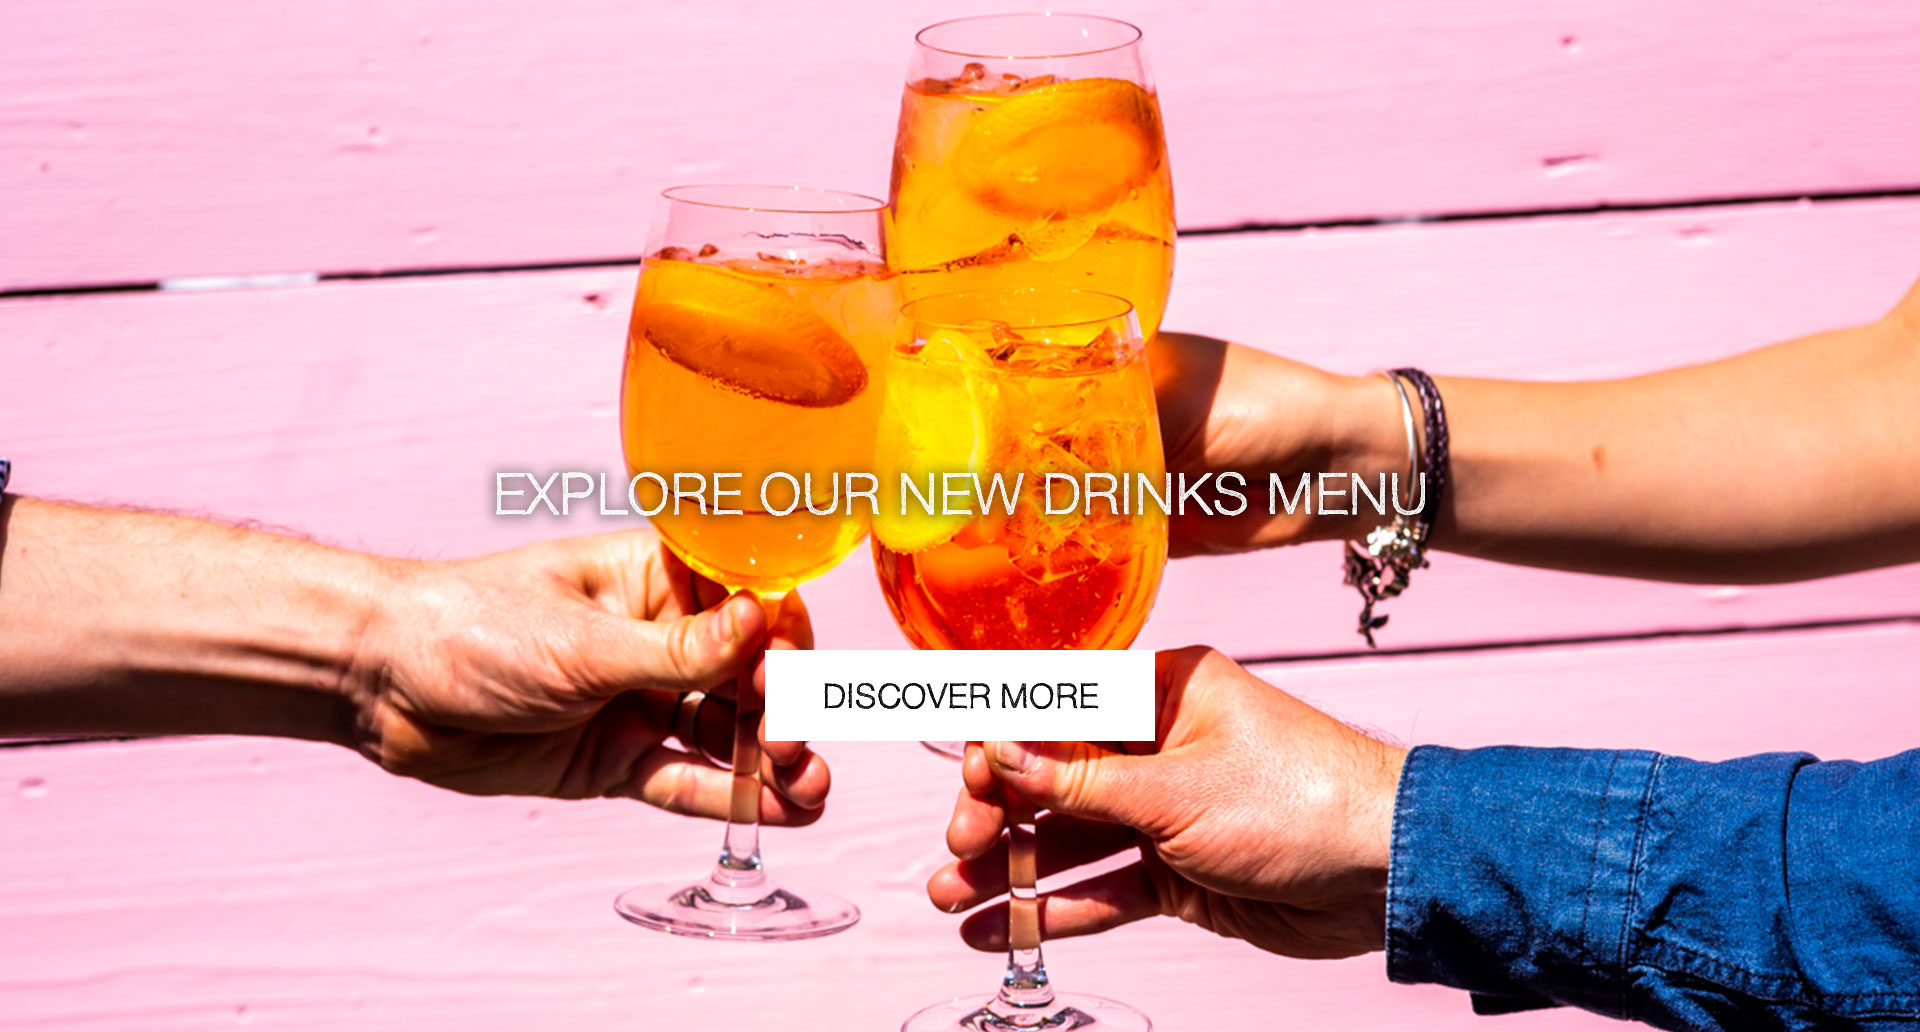 Our New Drinks Menu at The Royal George